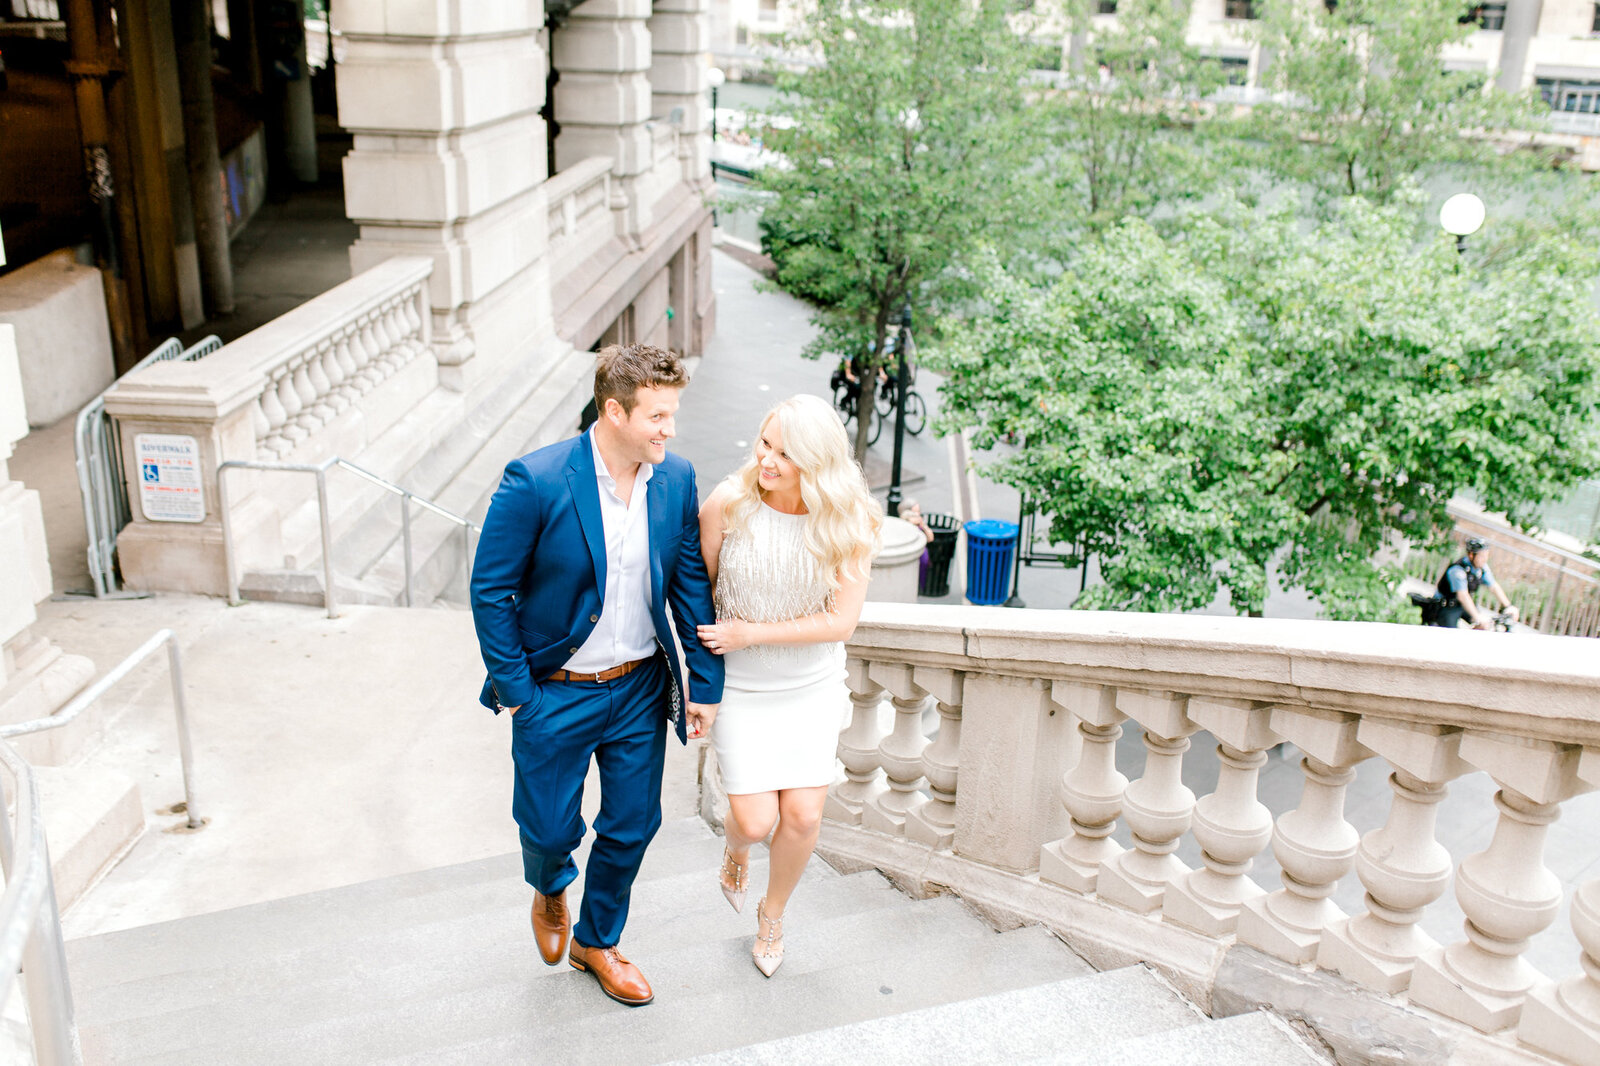 Lincoln Park Chicago  Engagement session by Chicago wedding photographer Bozena Voytko